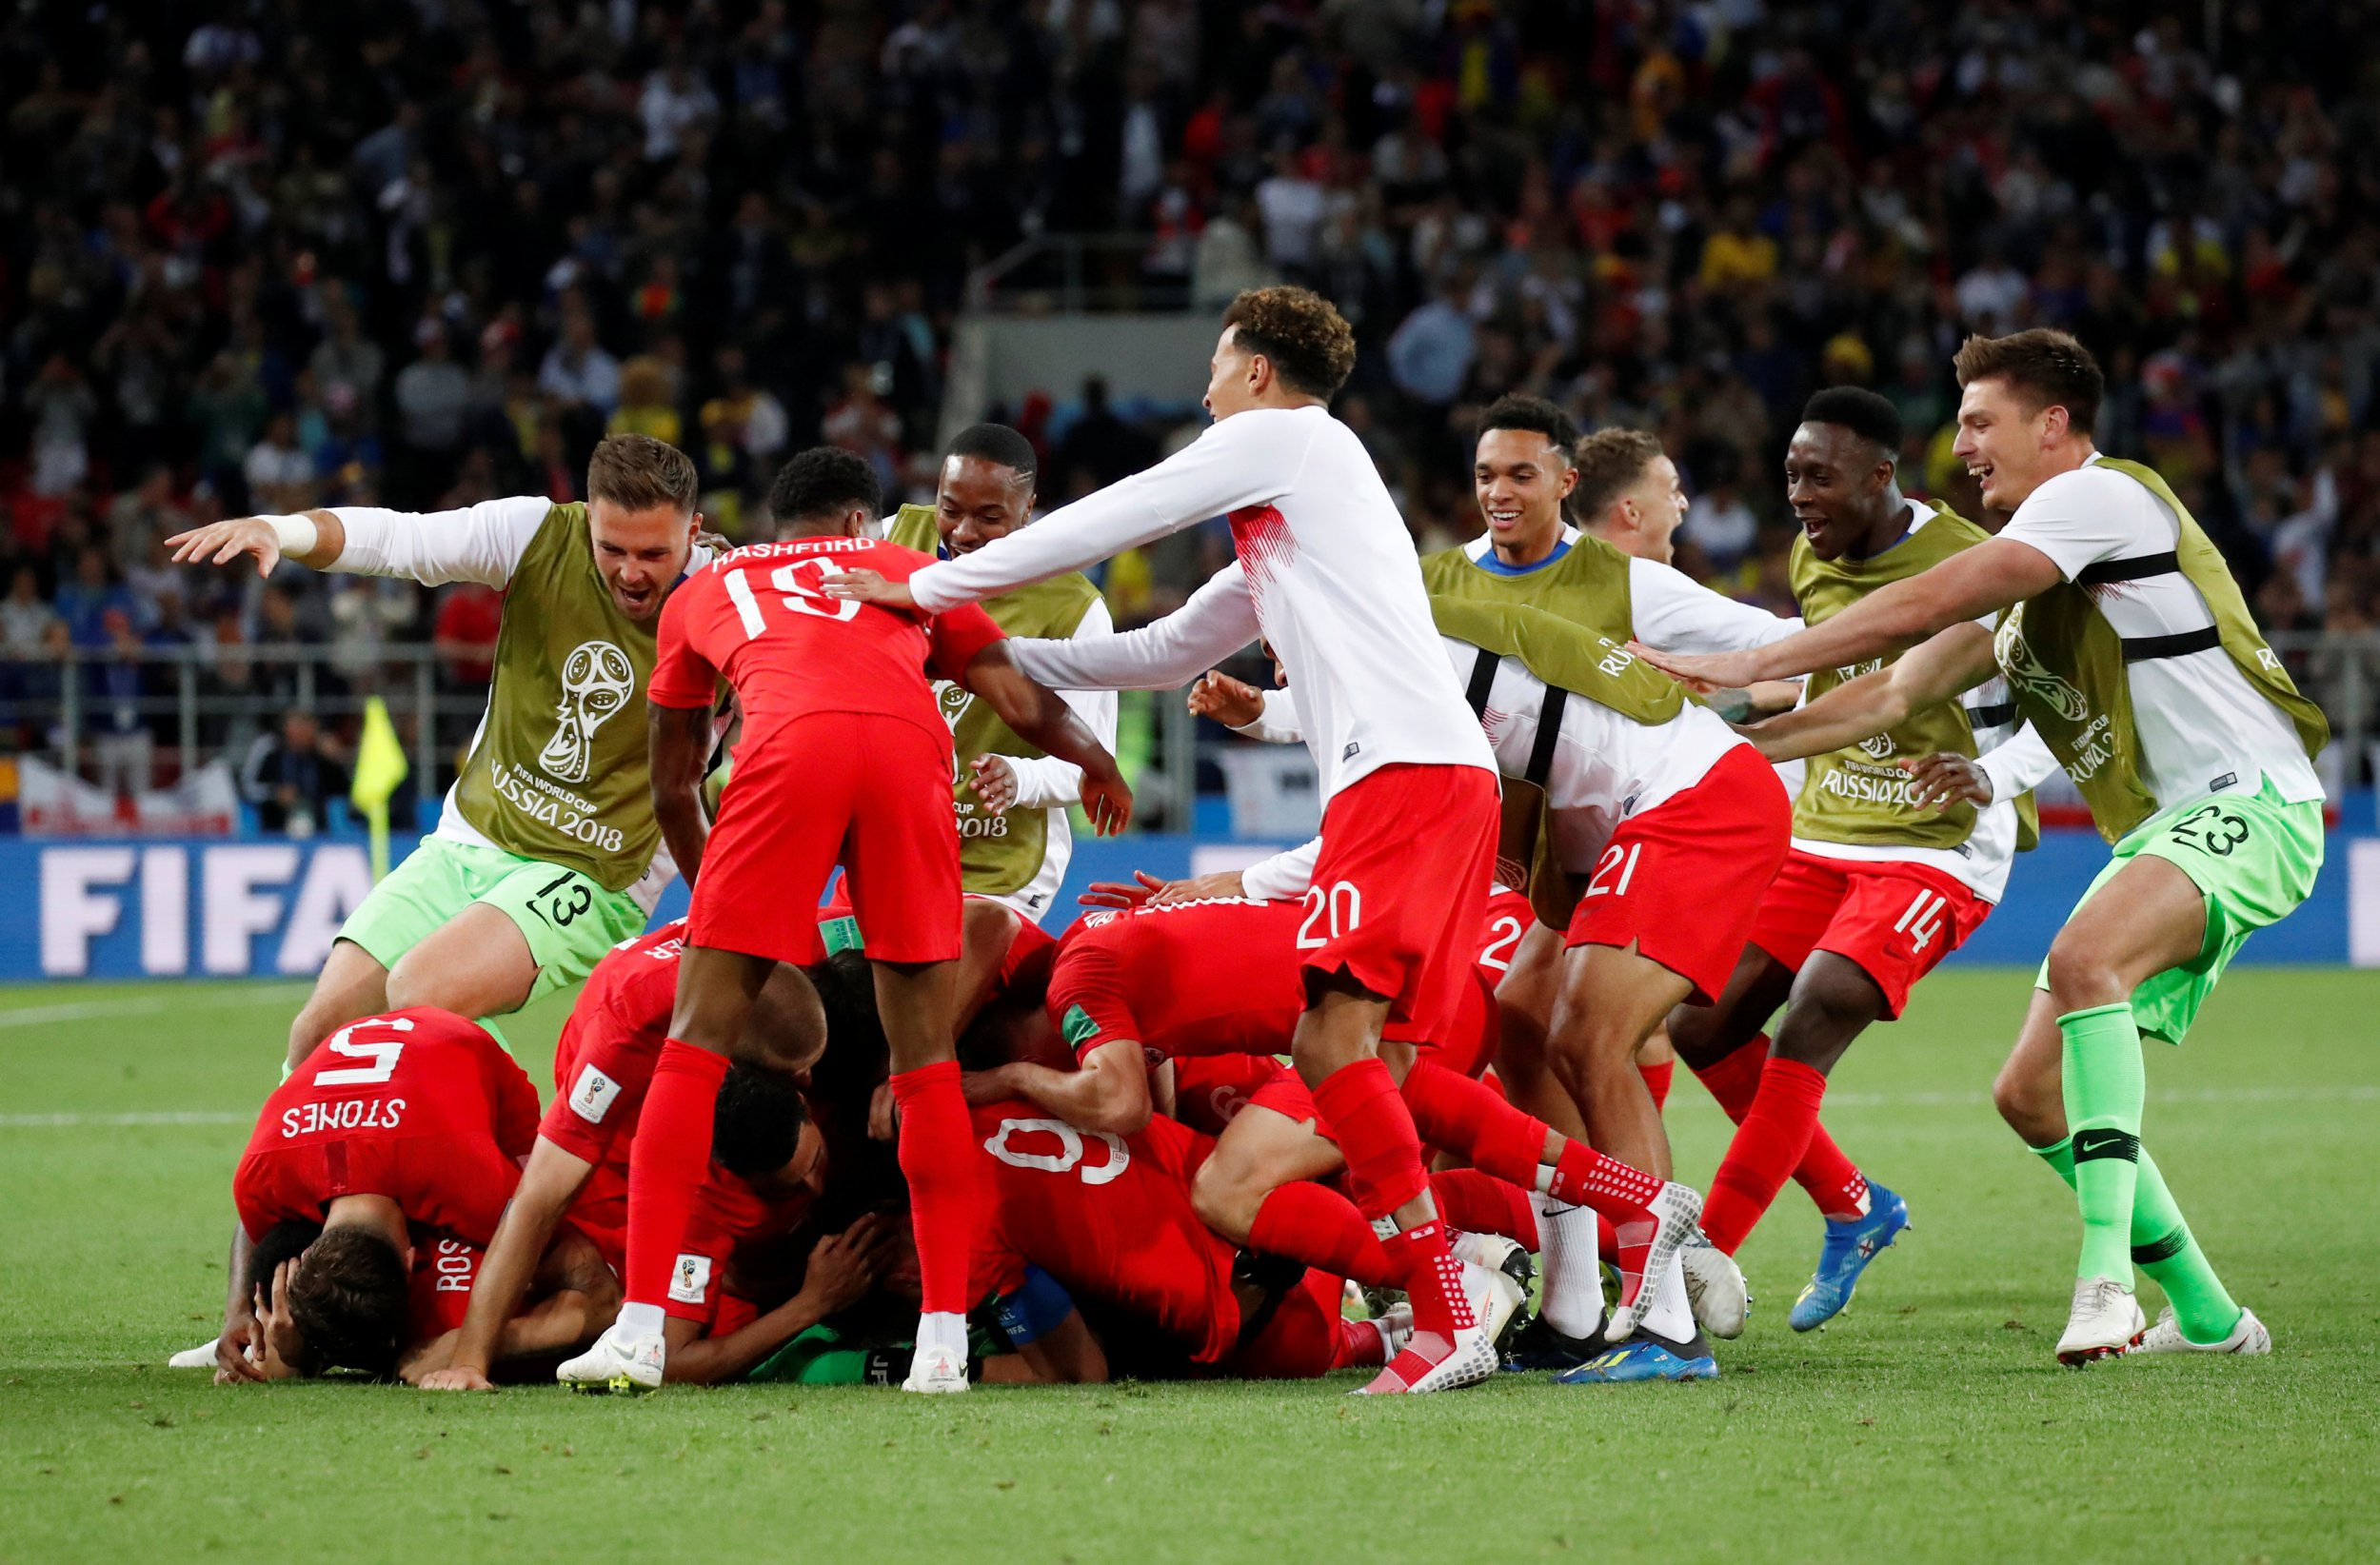 Soccer Football - World Cup - Round of 16 - Colombia vs England - Spartak Stadium, Moscow, Russia - July 3, 2018 England's Eric Dier celebrate winning the penalty shootout with team mates REUTERS/Maxim Shemetov